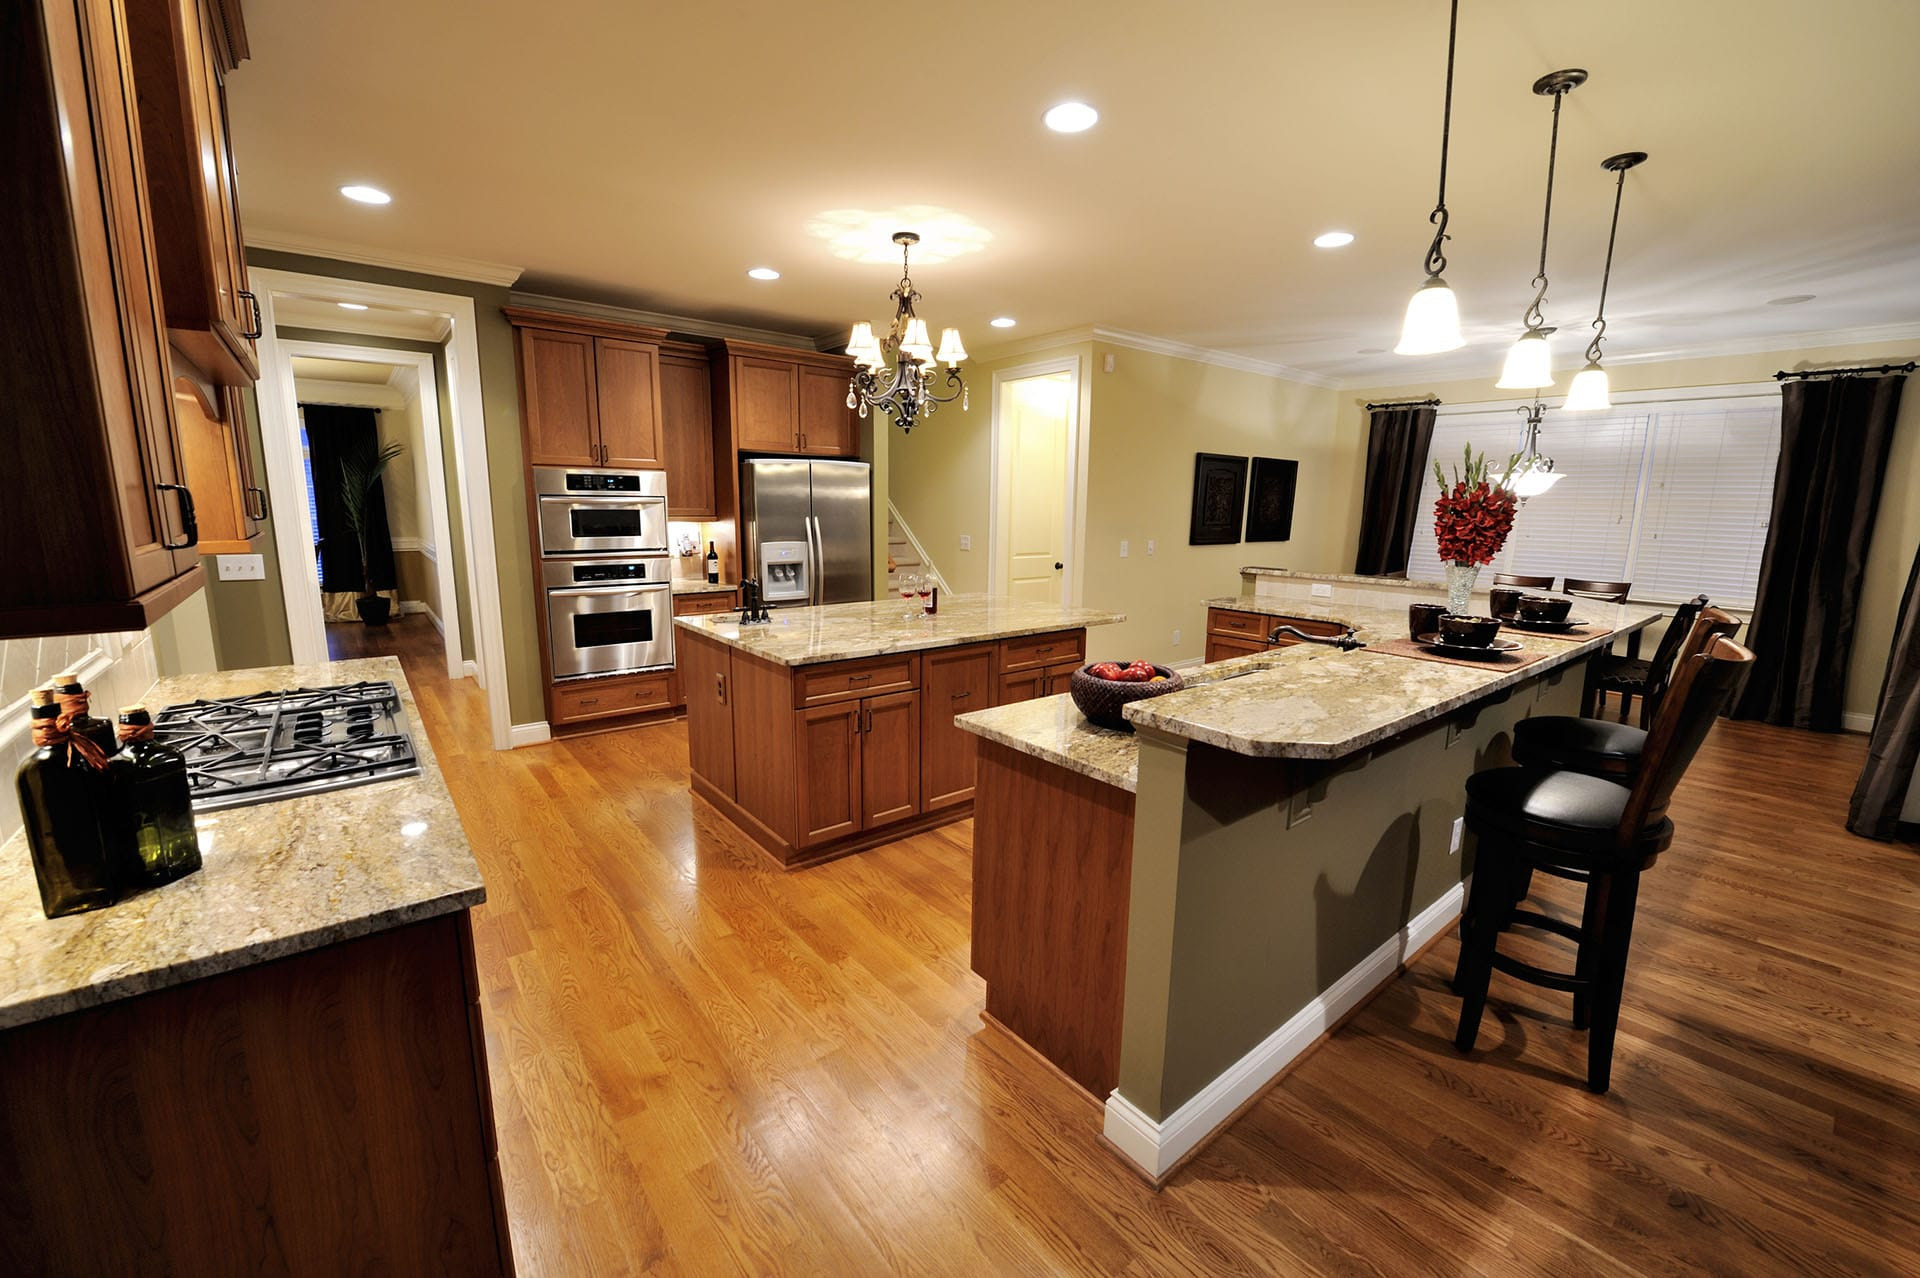 Home Electrical Re-wiring or Replacement on